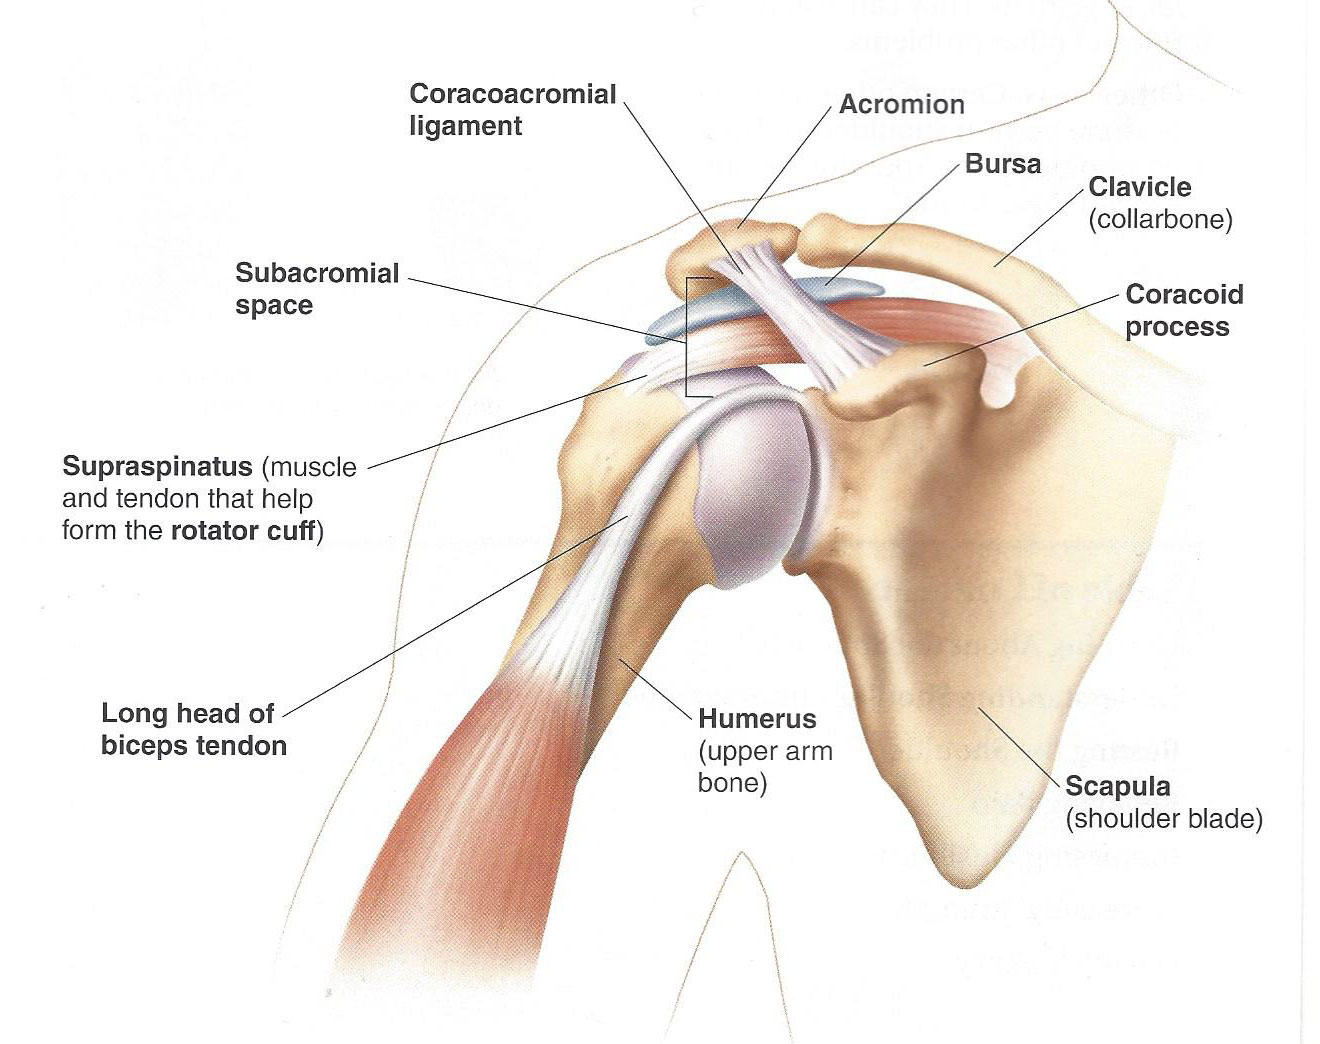 7 Key Exercises To Prevent Shoulder Injuries Foreverfitscience